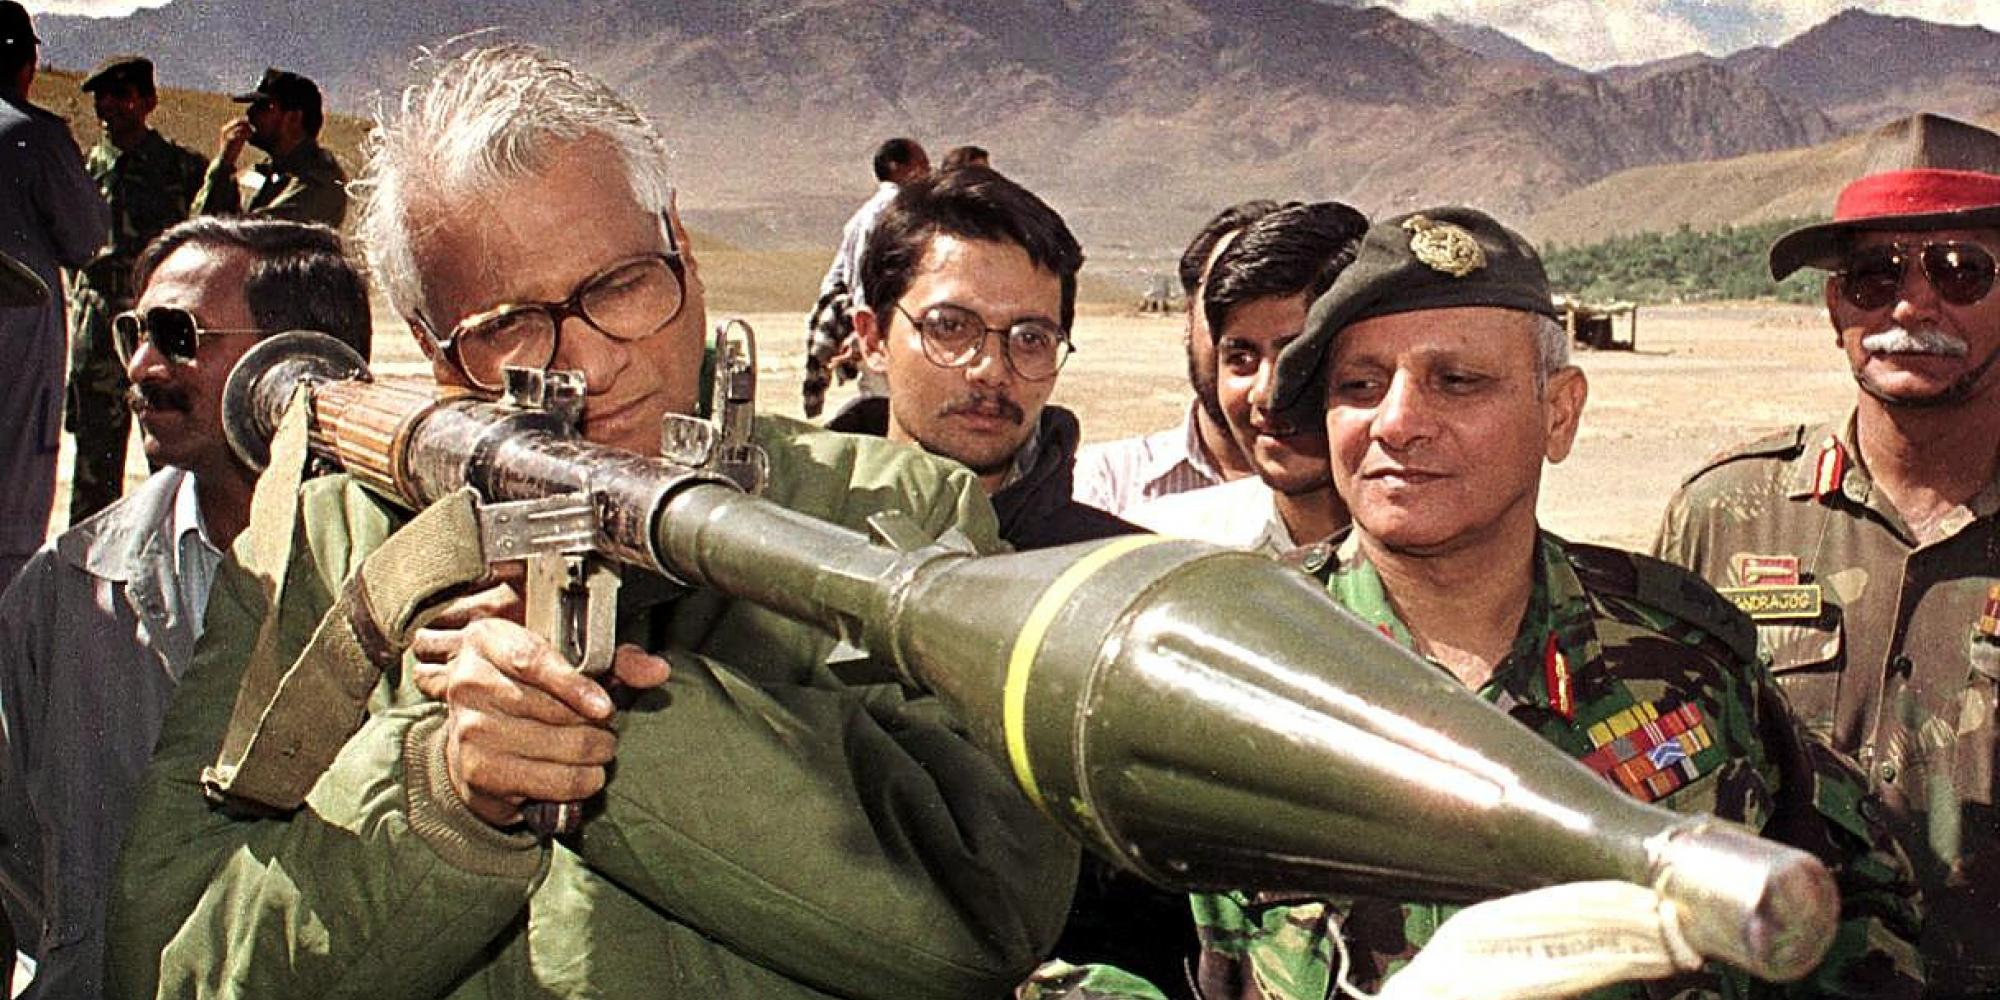 A man in thick-rim glasses stares down the sights of a rocket-propelled grenade. A crowd of men look on.